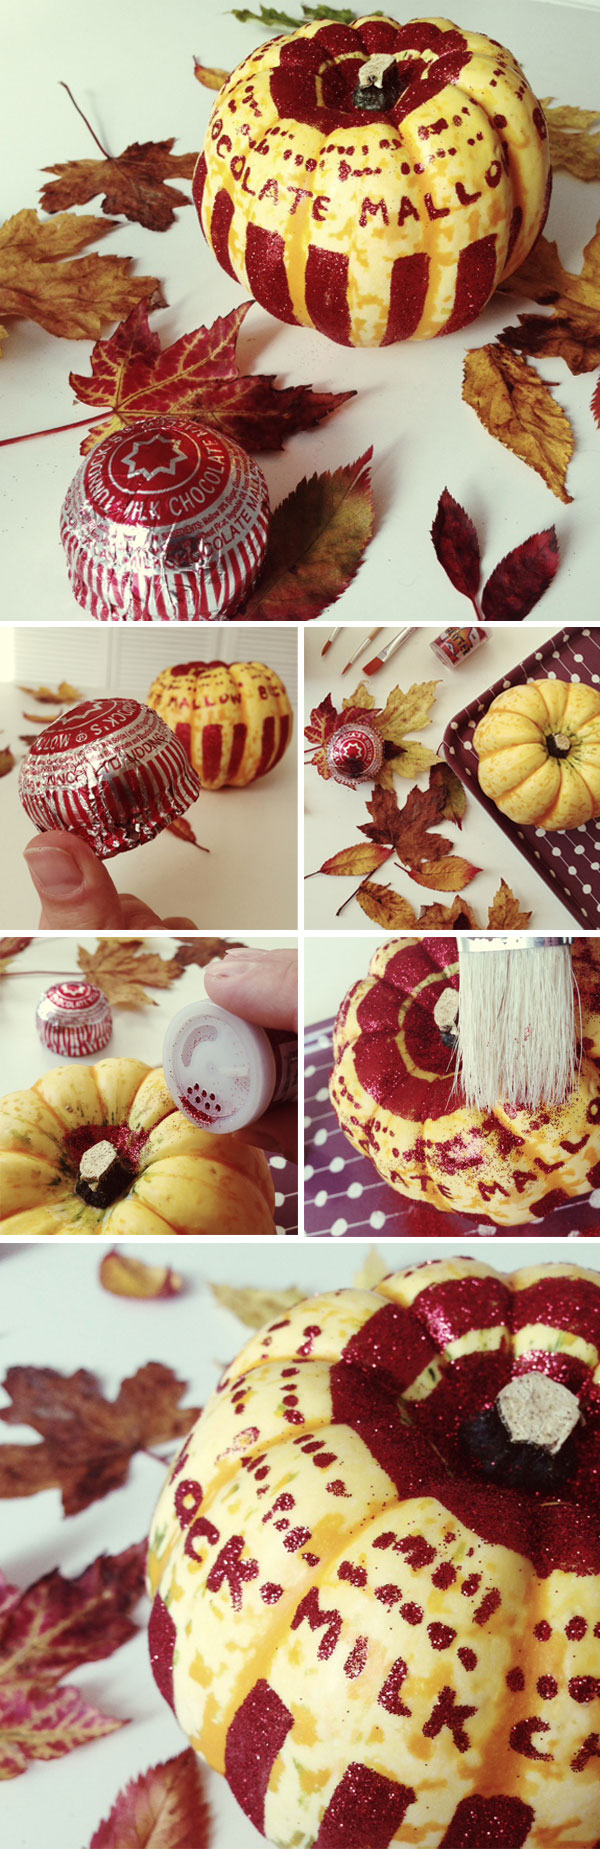 DIY Glitter Tunnocks Teacake Pumpkins by Nikki McWilliams